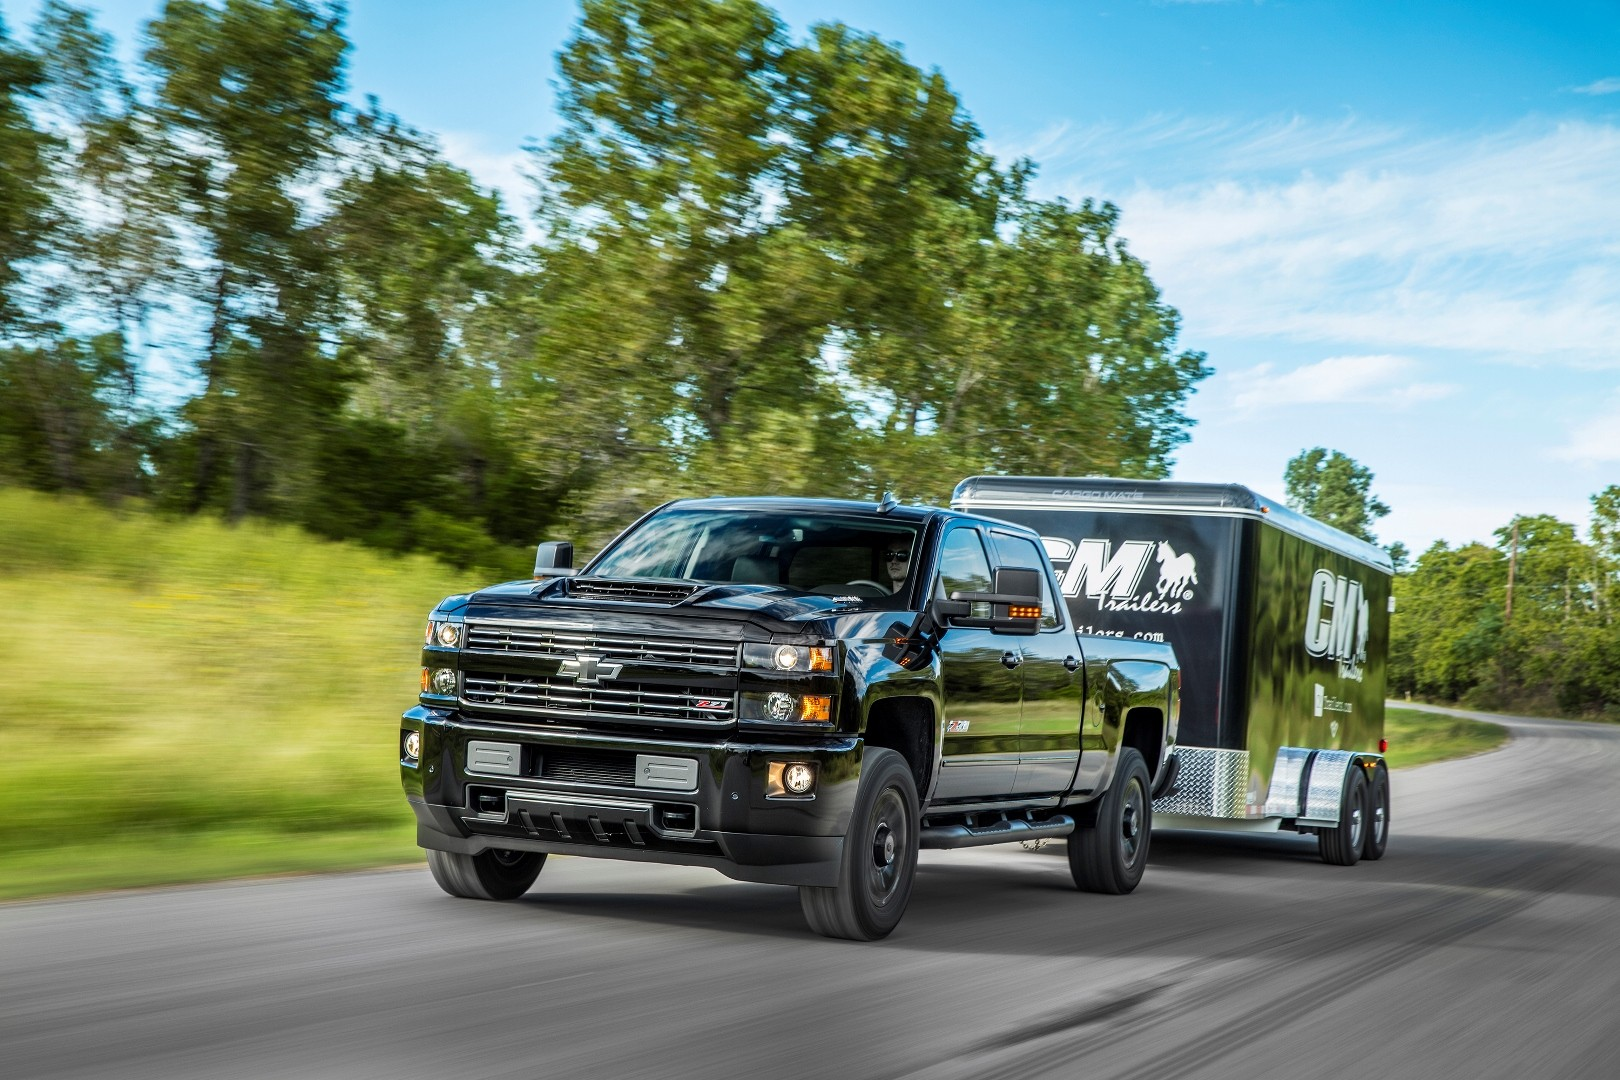 2018 Chevy High Country 2500 >> L5P Duramax Diesel Is Go In 2017 Chevrolet Silverado HD and 2017 GMC Sierra HD - autoevolution